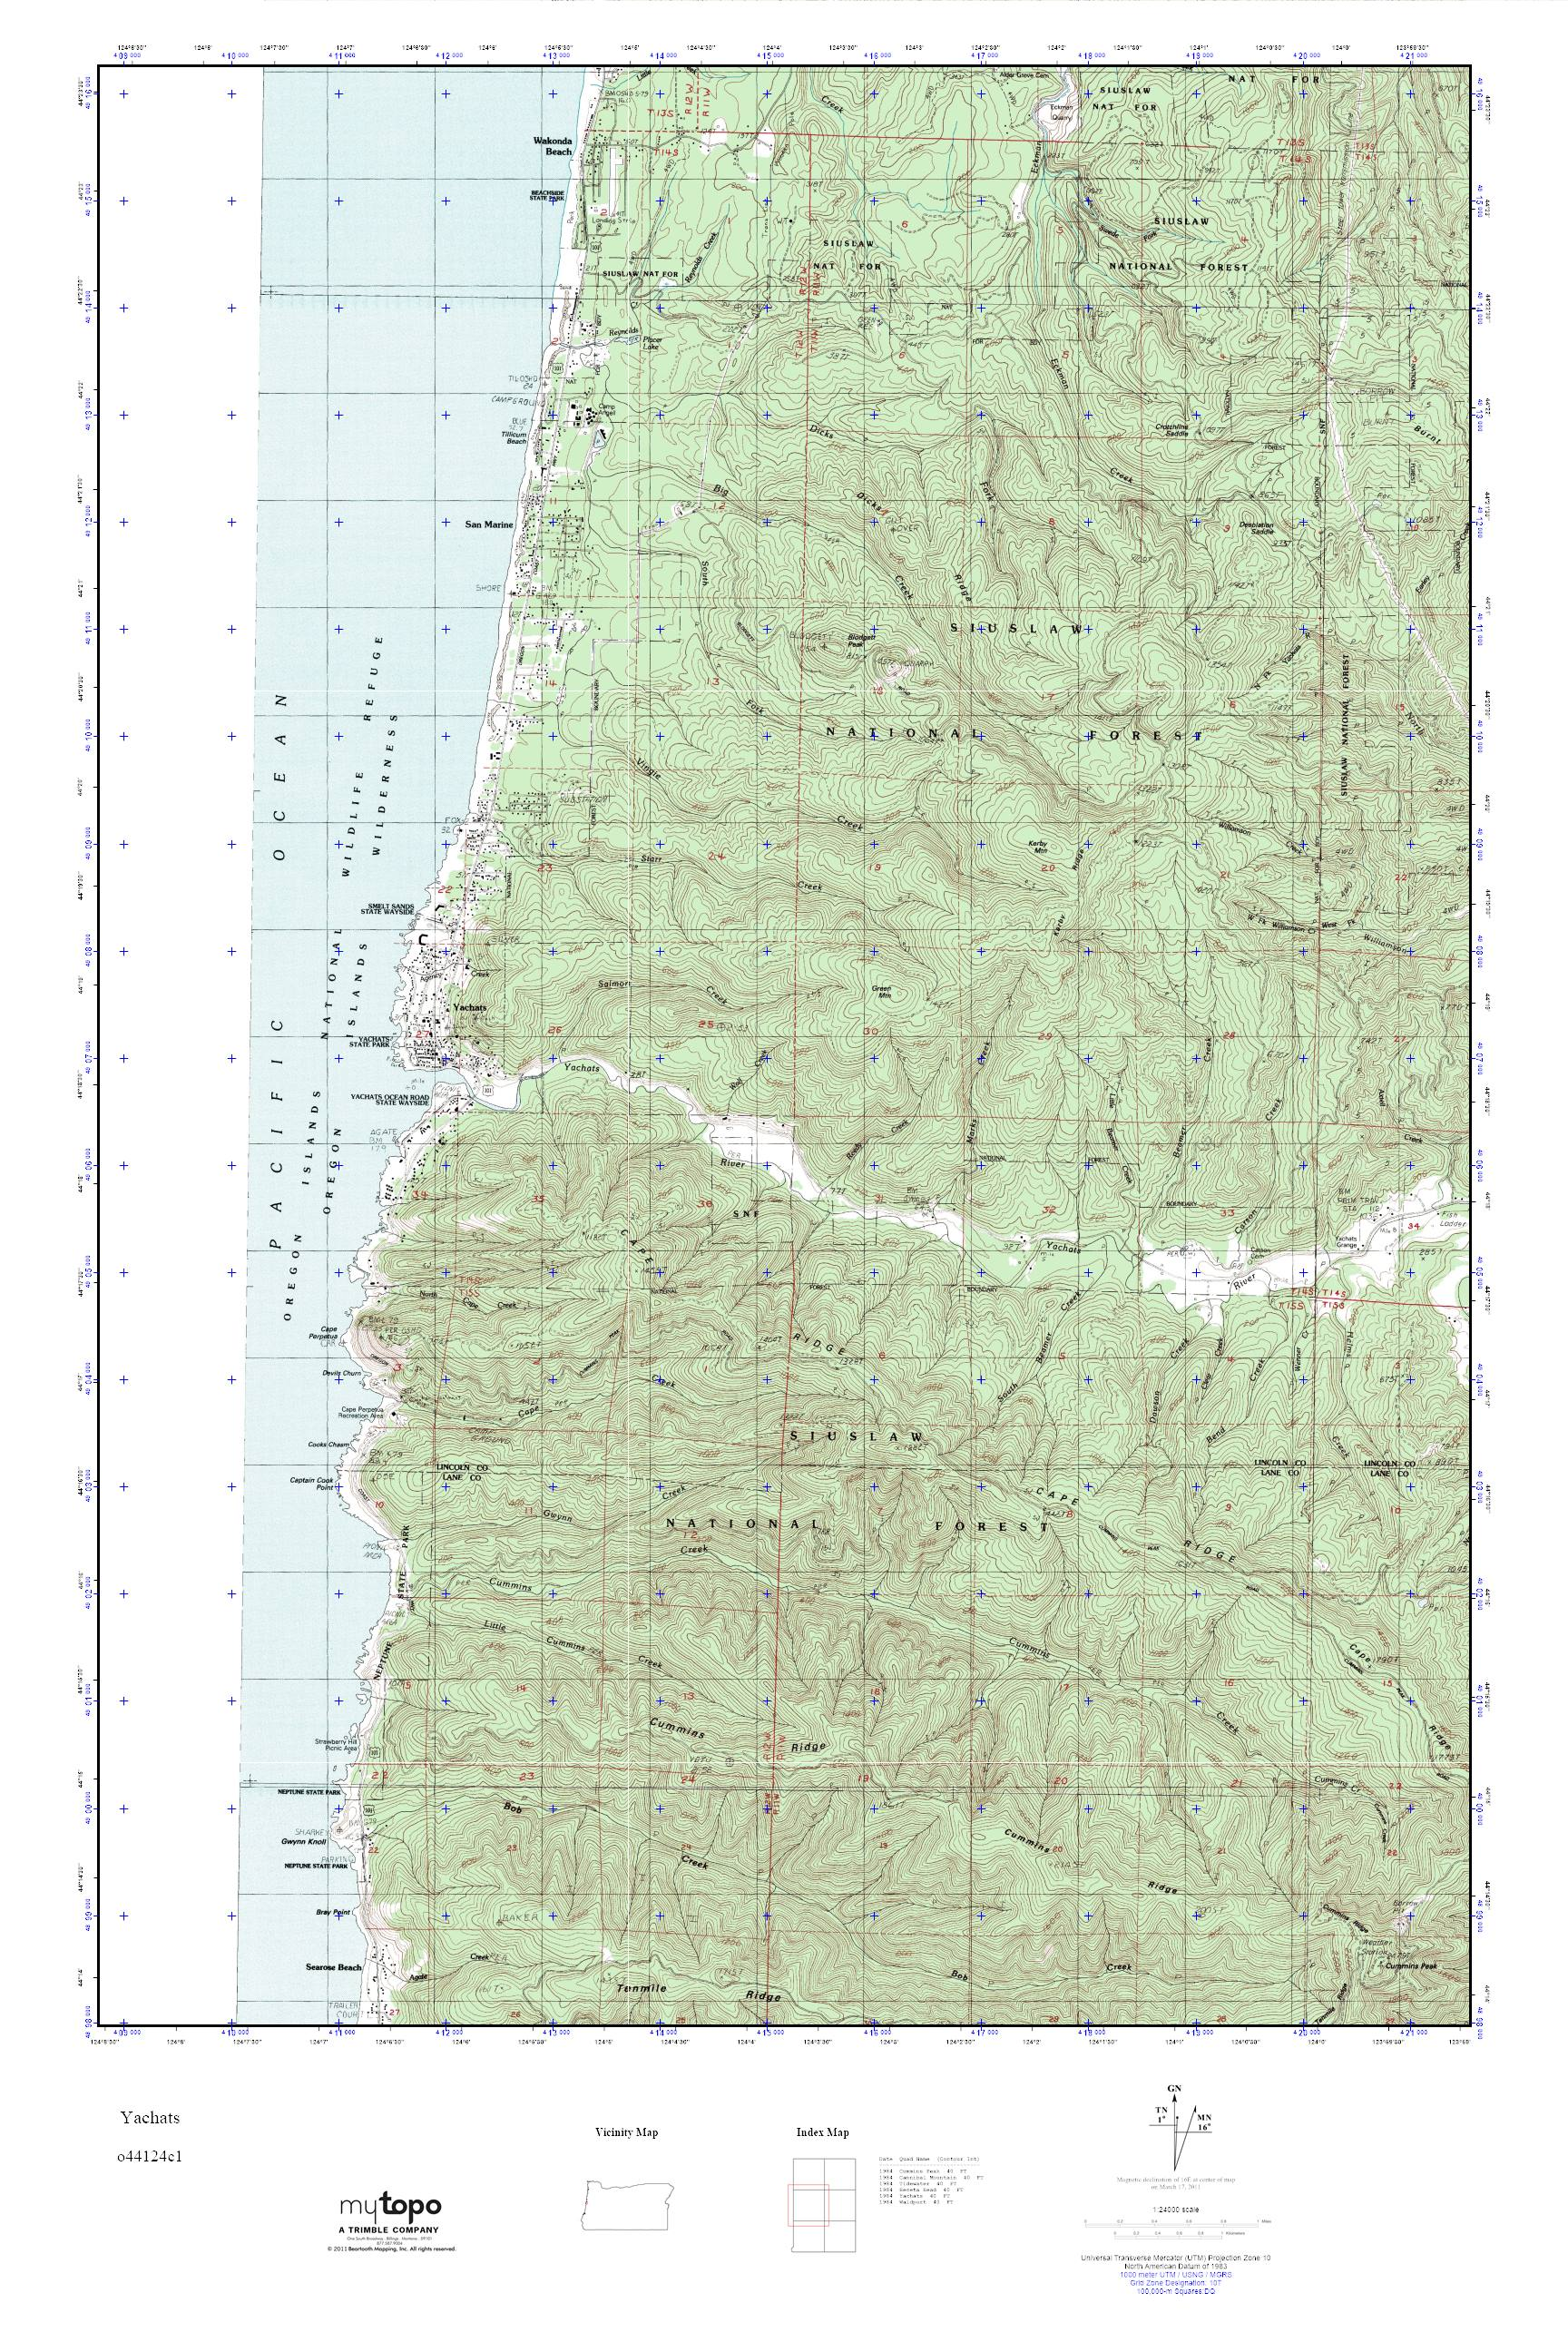 MyTopo Yachats, Oregon USGS Quad Topo Map on oregon milepost marker map, oregon coast map, eastern oregon cities map, gleneden beach oregon map, sea lion caves oregon map, bandon oregon map, d river oregon map, city of astoria oregon map, cape perpetua map, cannon beach oregon map, northern california oregon border map, oregon odot district map, waldport oregon map, beverly beach state park oregon map, st. paul oregon map, oregon rest areas map, floras lake oregon map, pistol river oregon map, highway 22 oregon map, cape lookout state park oregon map,